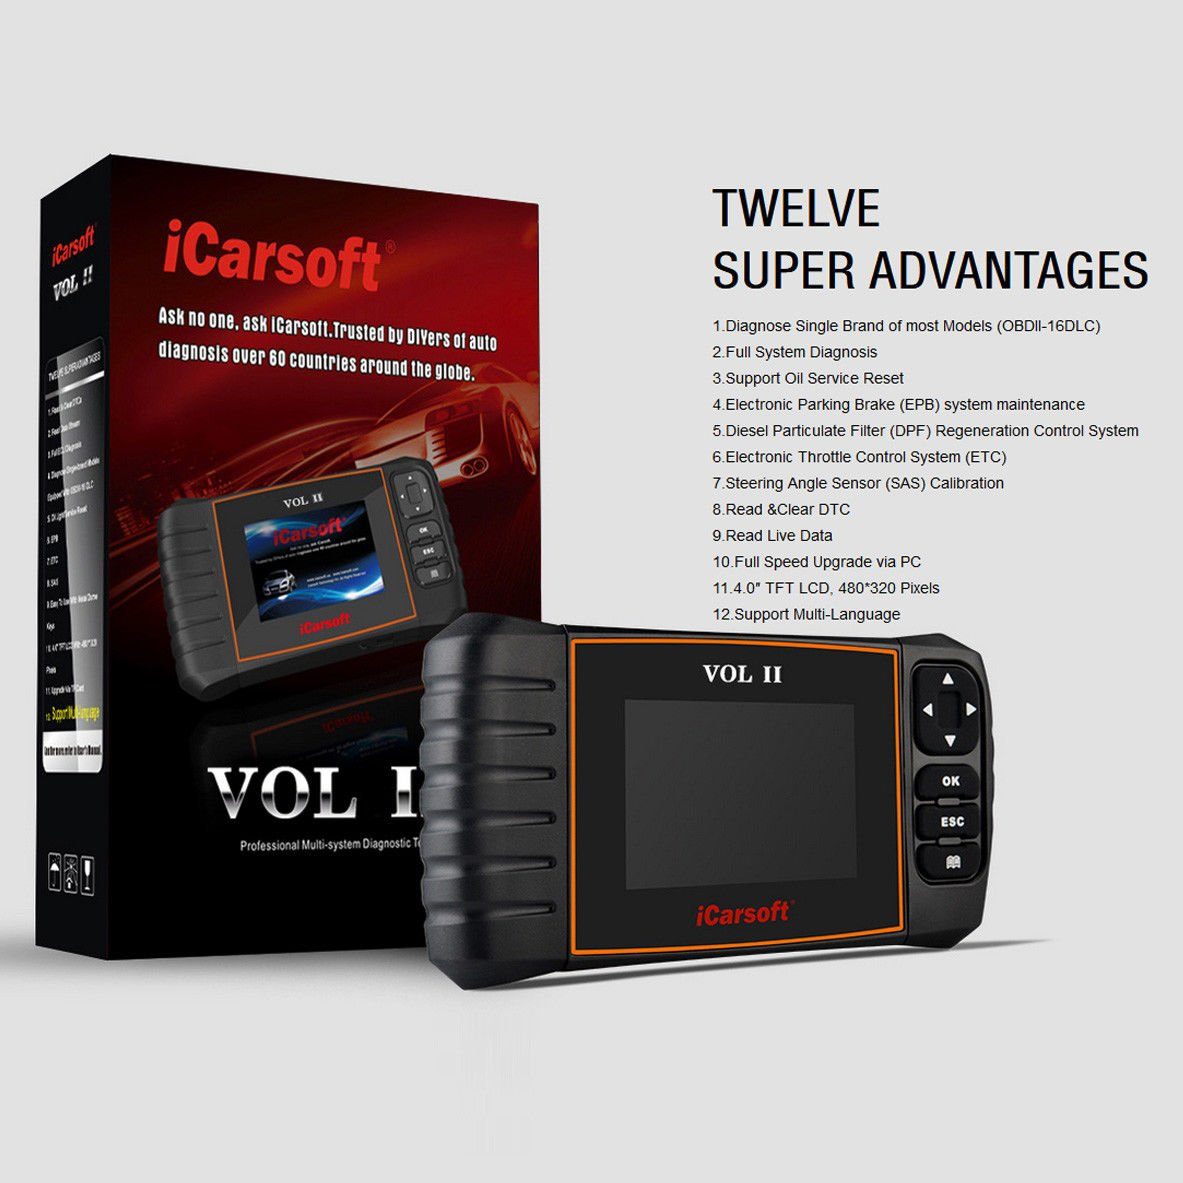 iCarsoft VOL II OBDII diagnostic tool for Volvo Saab multi systems, SRS ABS Engine oil reset, EPB by iCarsoft (Image #4)